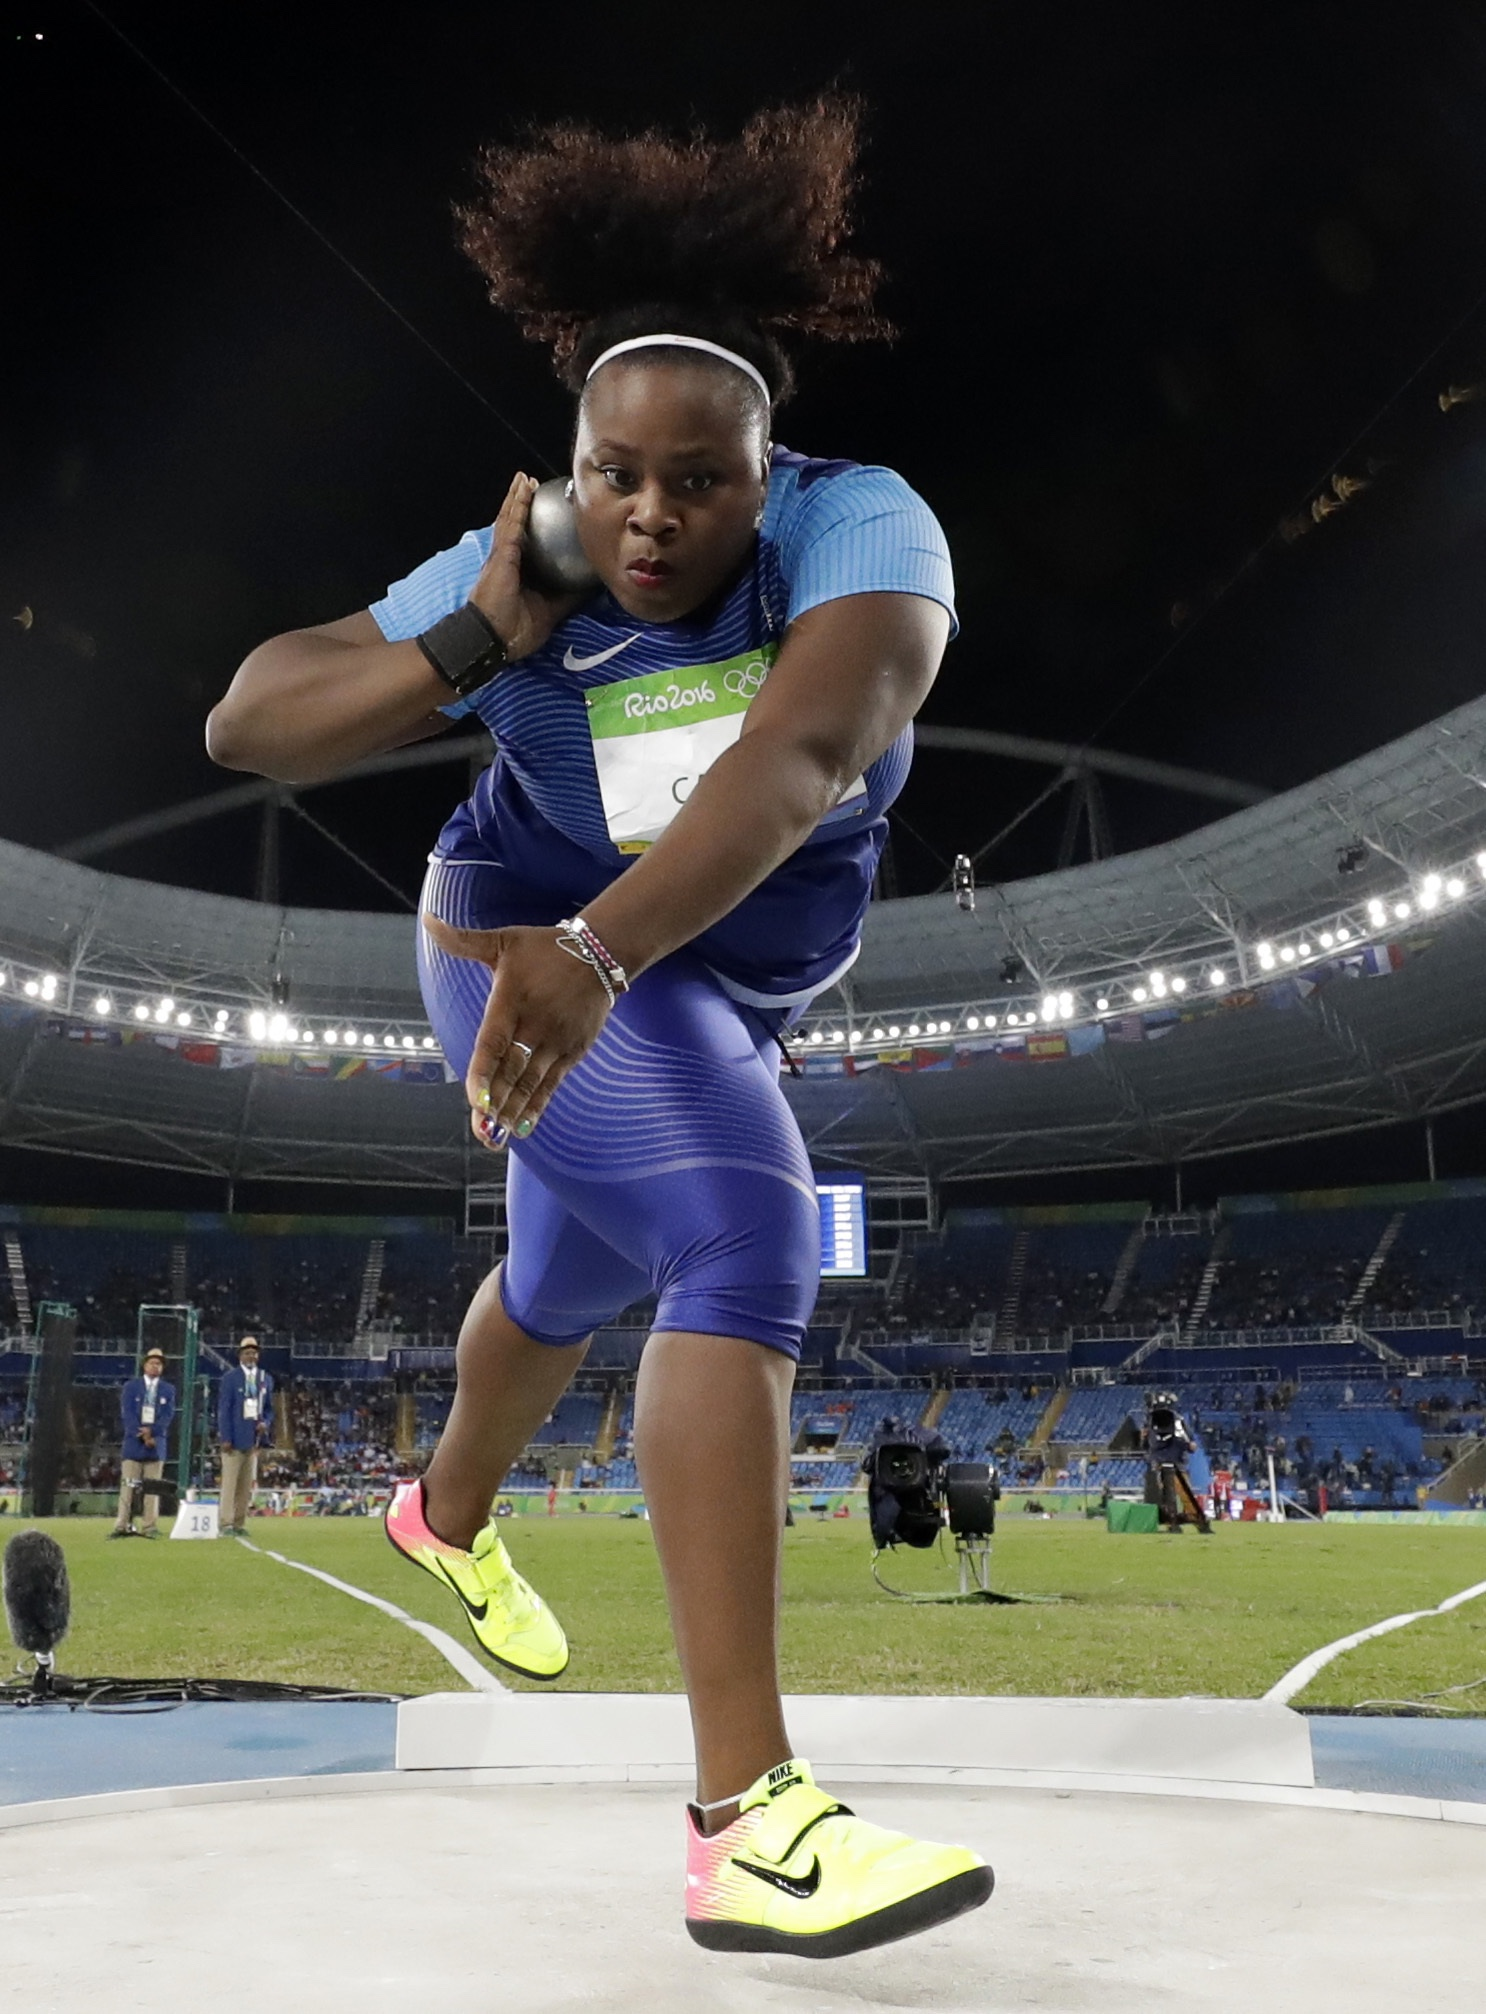 United States' Michelle Carter competes in the final of the women's shot put during the athletics competitions of the 2016 Summer Olympics at the Olympic stadium in Rio de Janeiro, Brazil, Friday, Aug. 12, 2016. (AP Photo/Matt Dunham)